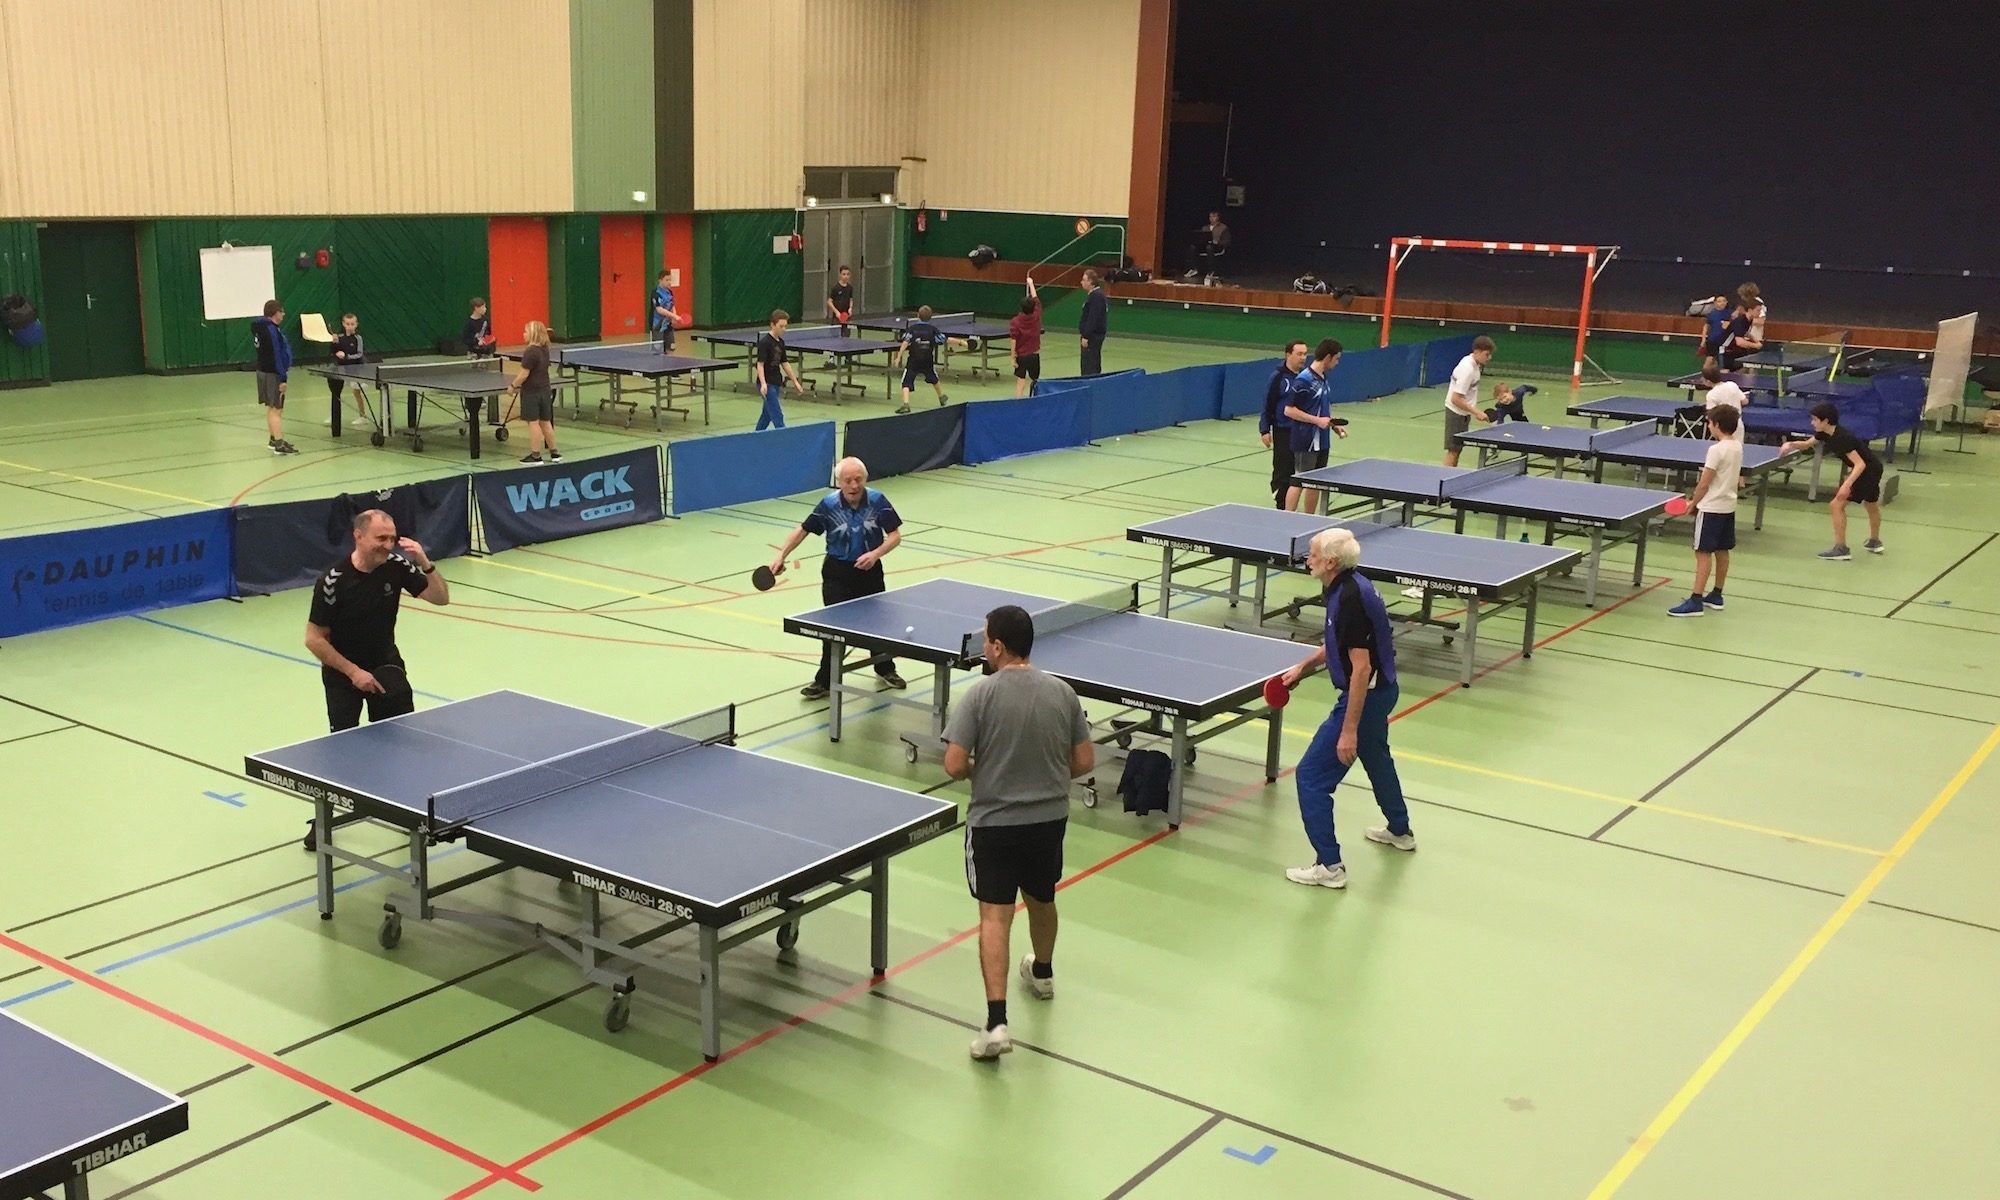 Wack Sport Tennis De Table Classement Morestel Tennis De Table